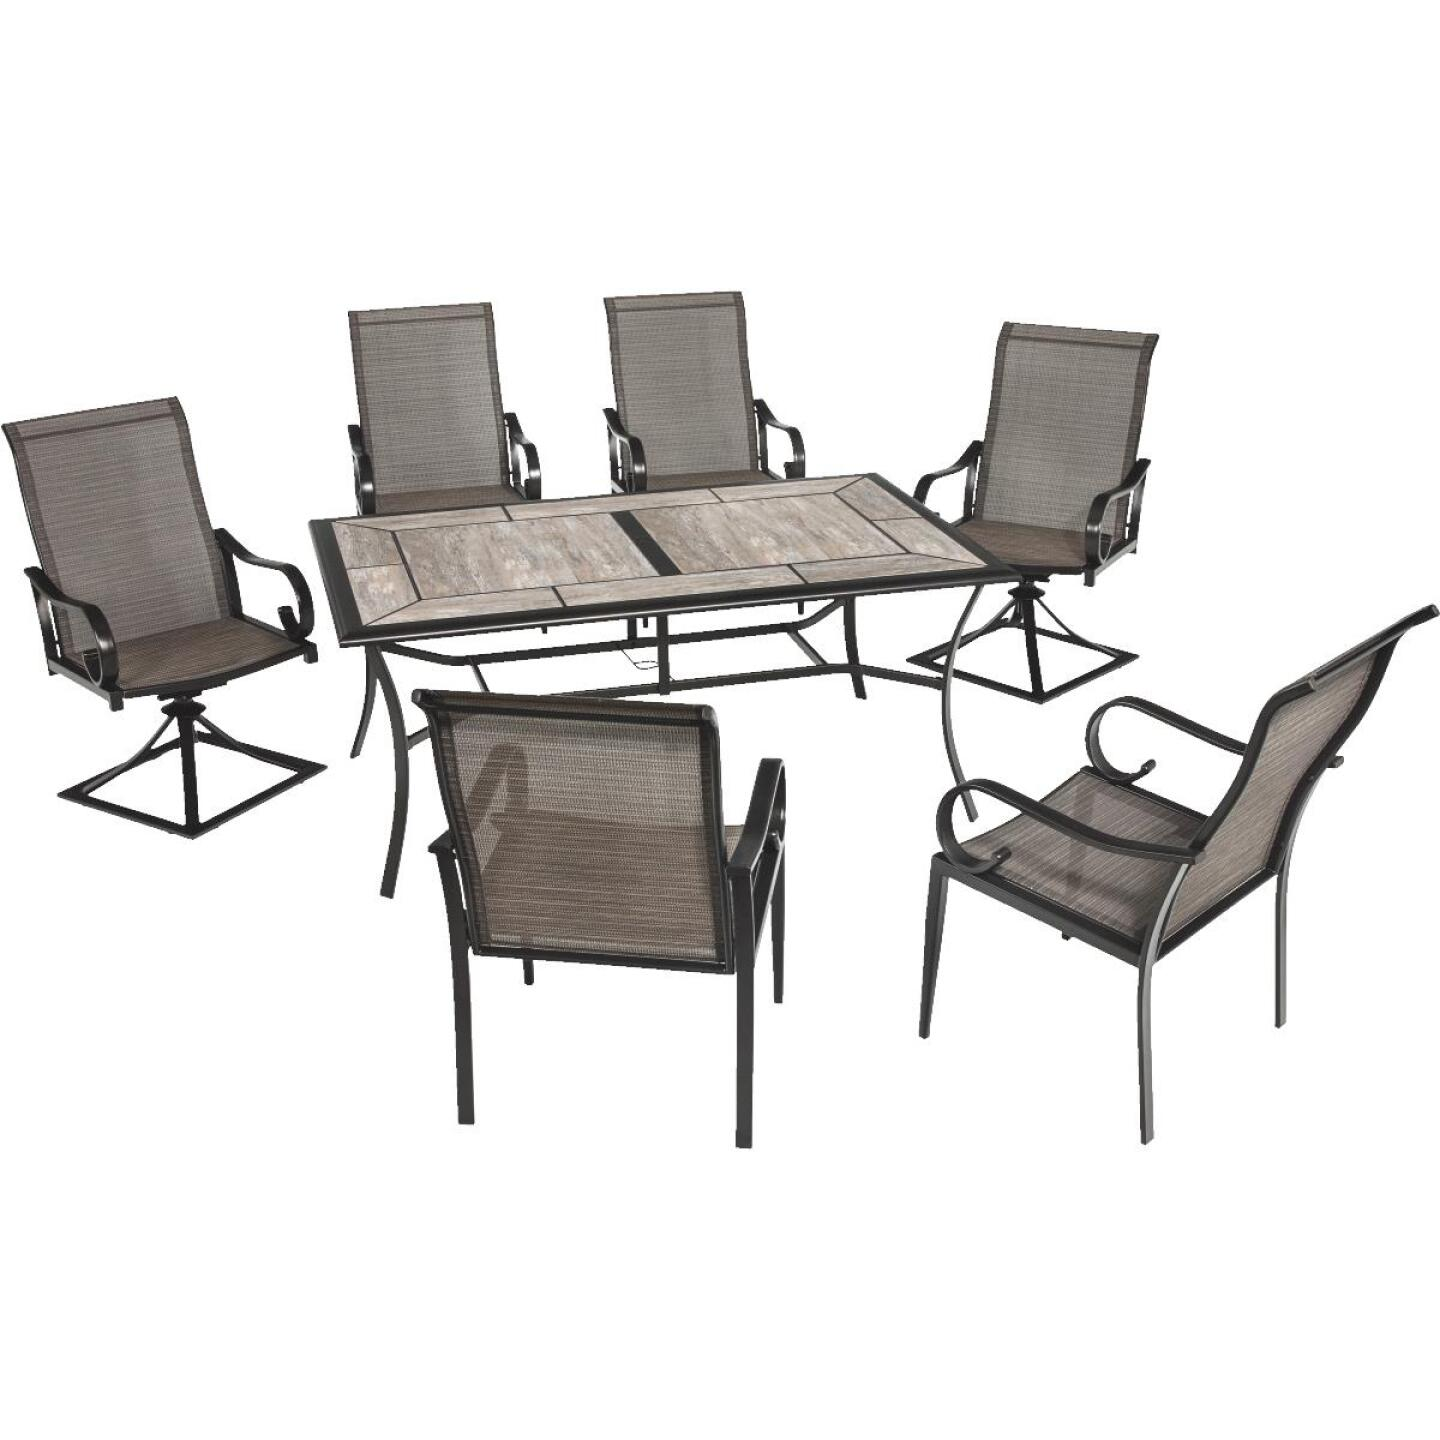 Outdoor Expressions Berkshire 7-Piece Dining Set Image 51